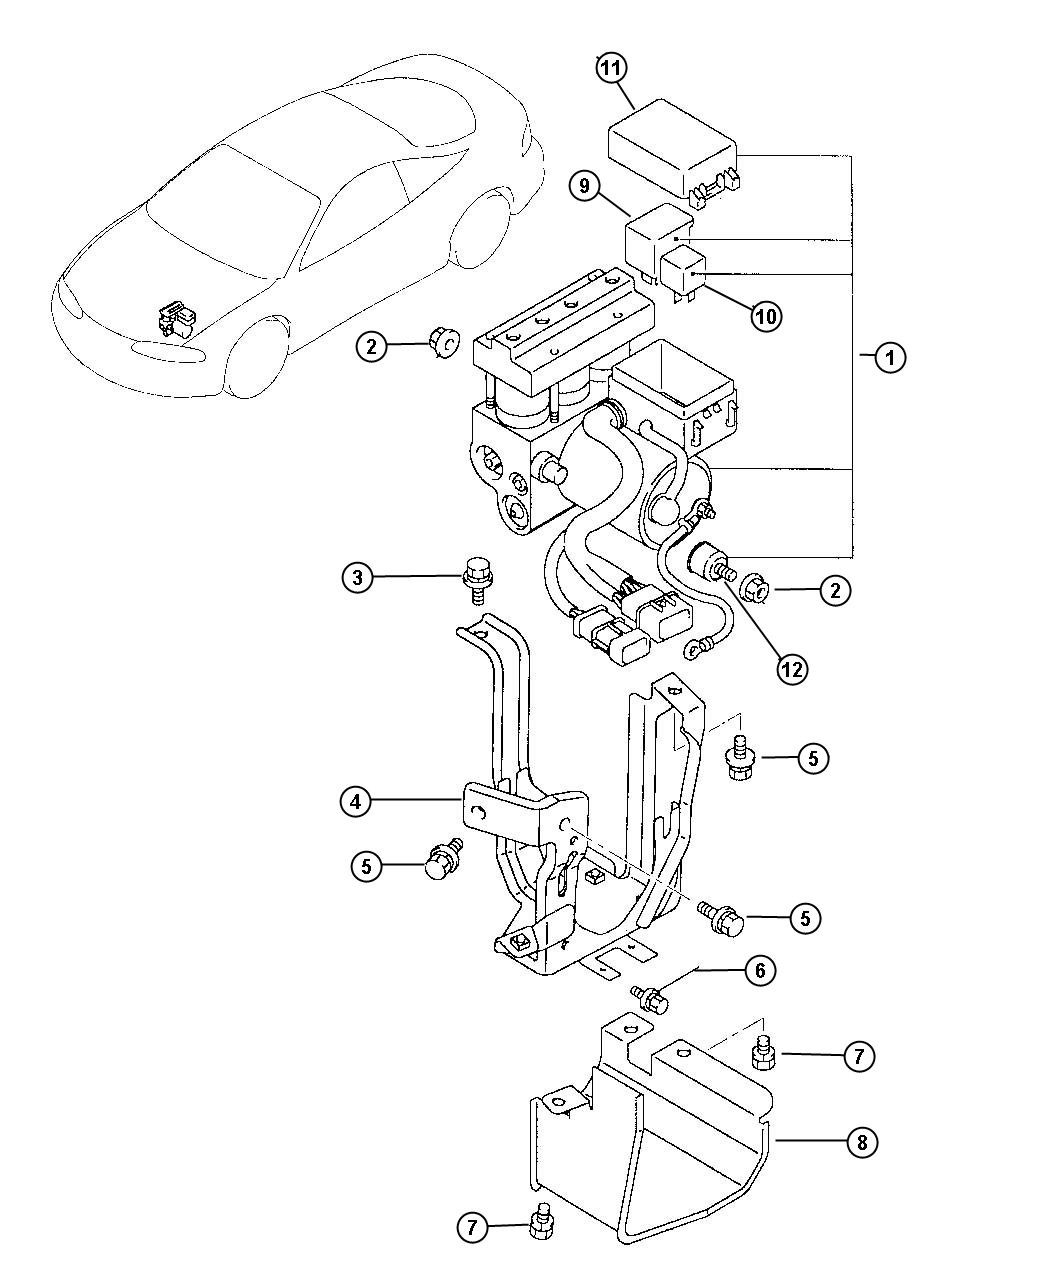 Chrysler Sebring Modulator. Anti-lock brake system